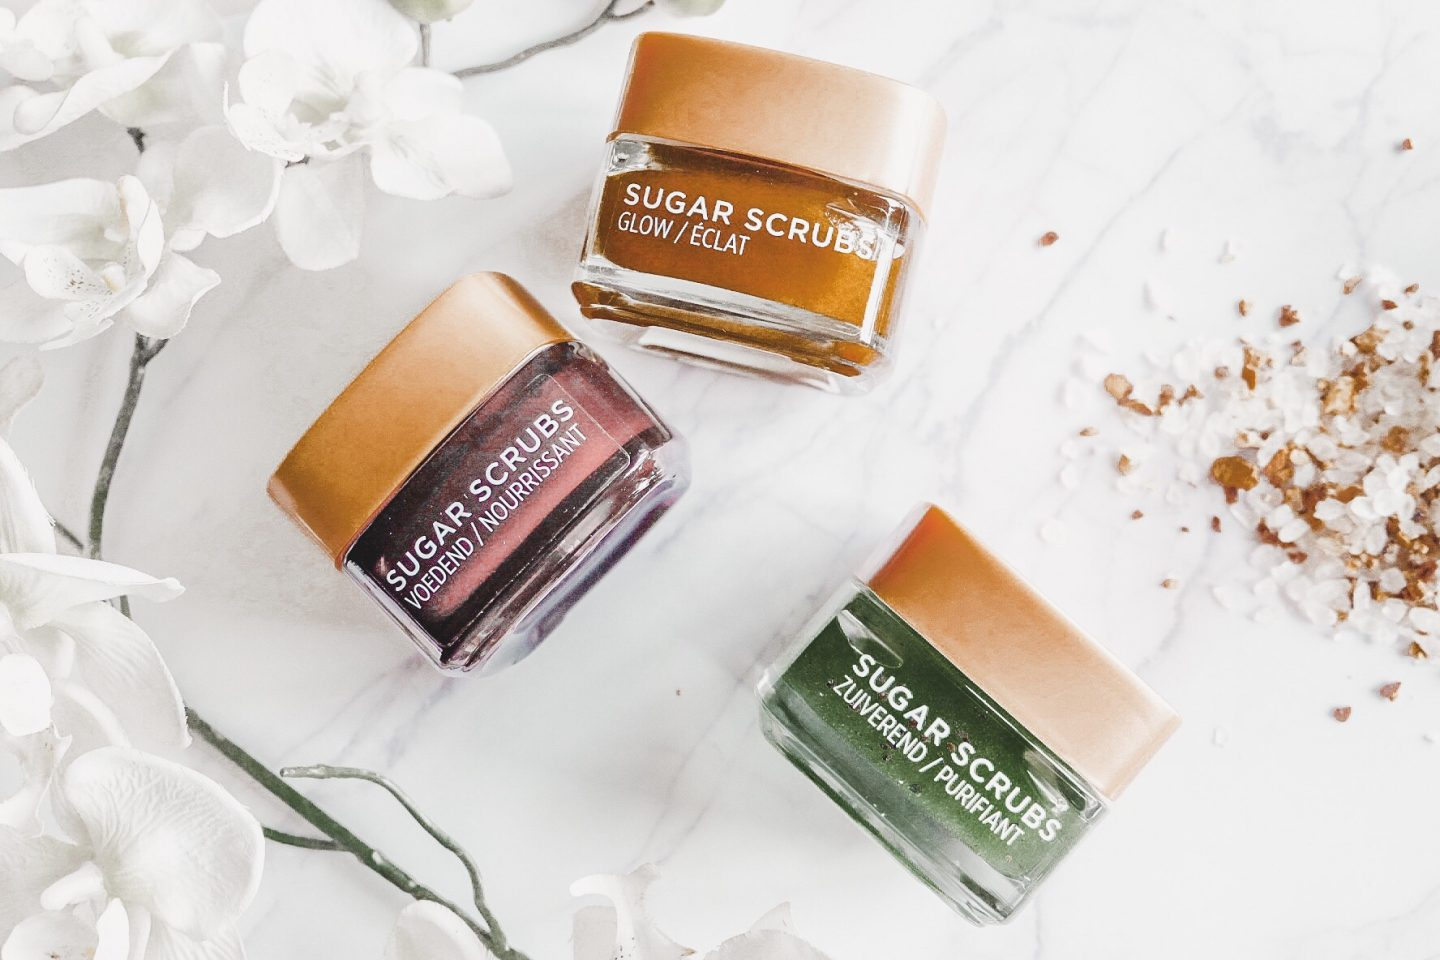 SCRUB AWAY WITH THE NEW SUGAR SCRUBS BY L'OREAL